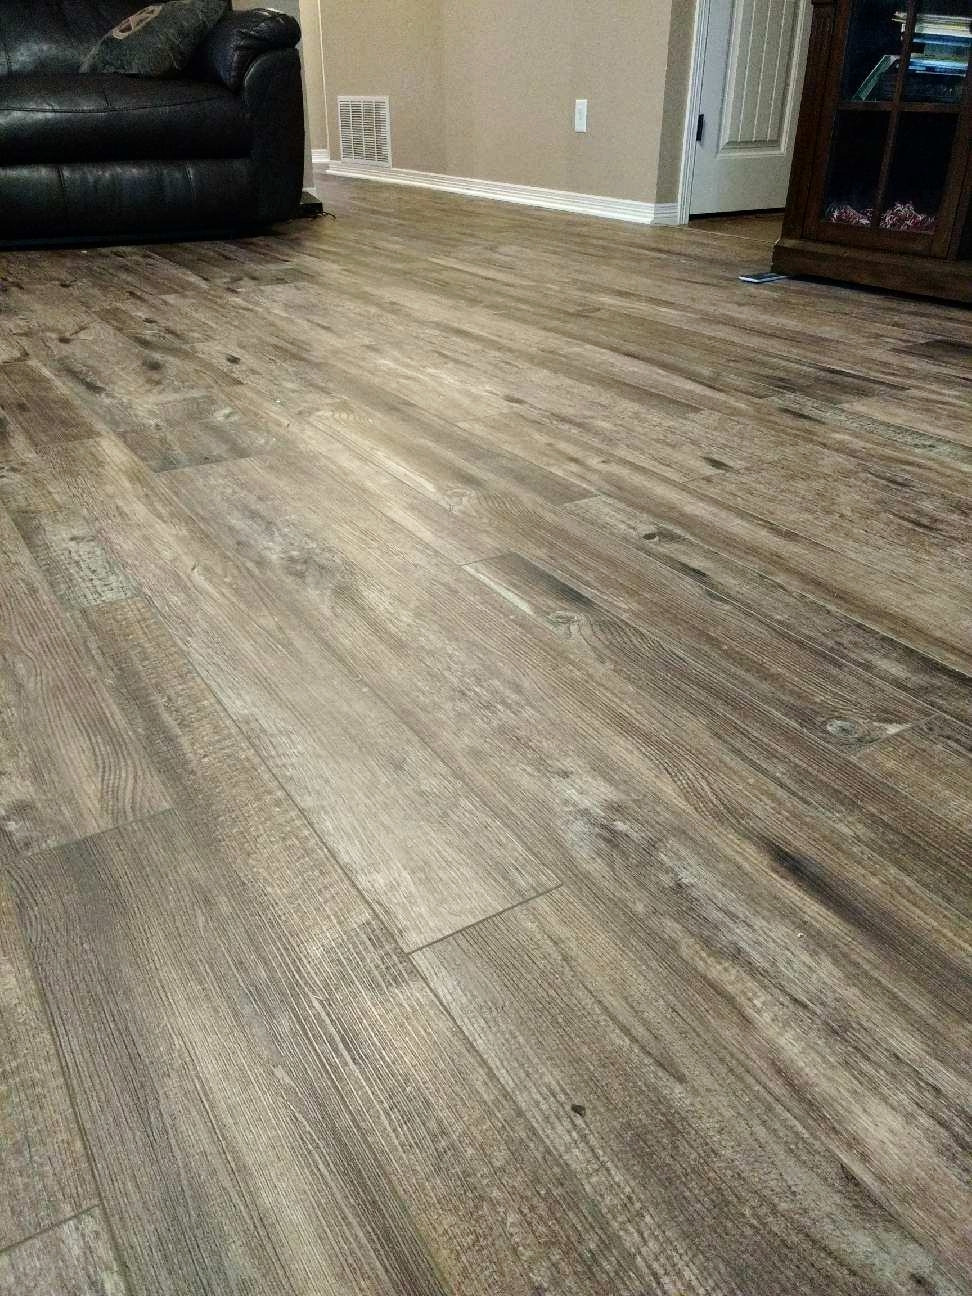 hardwood floor refinishing northern kentucky of bell county flooring with attach13371 20180716 120350